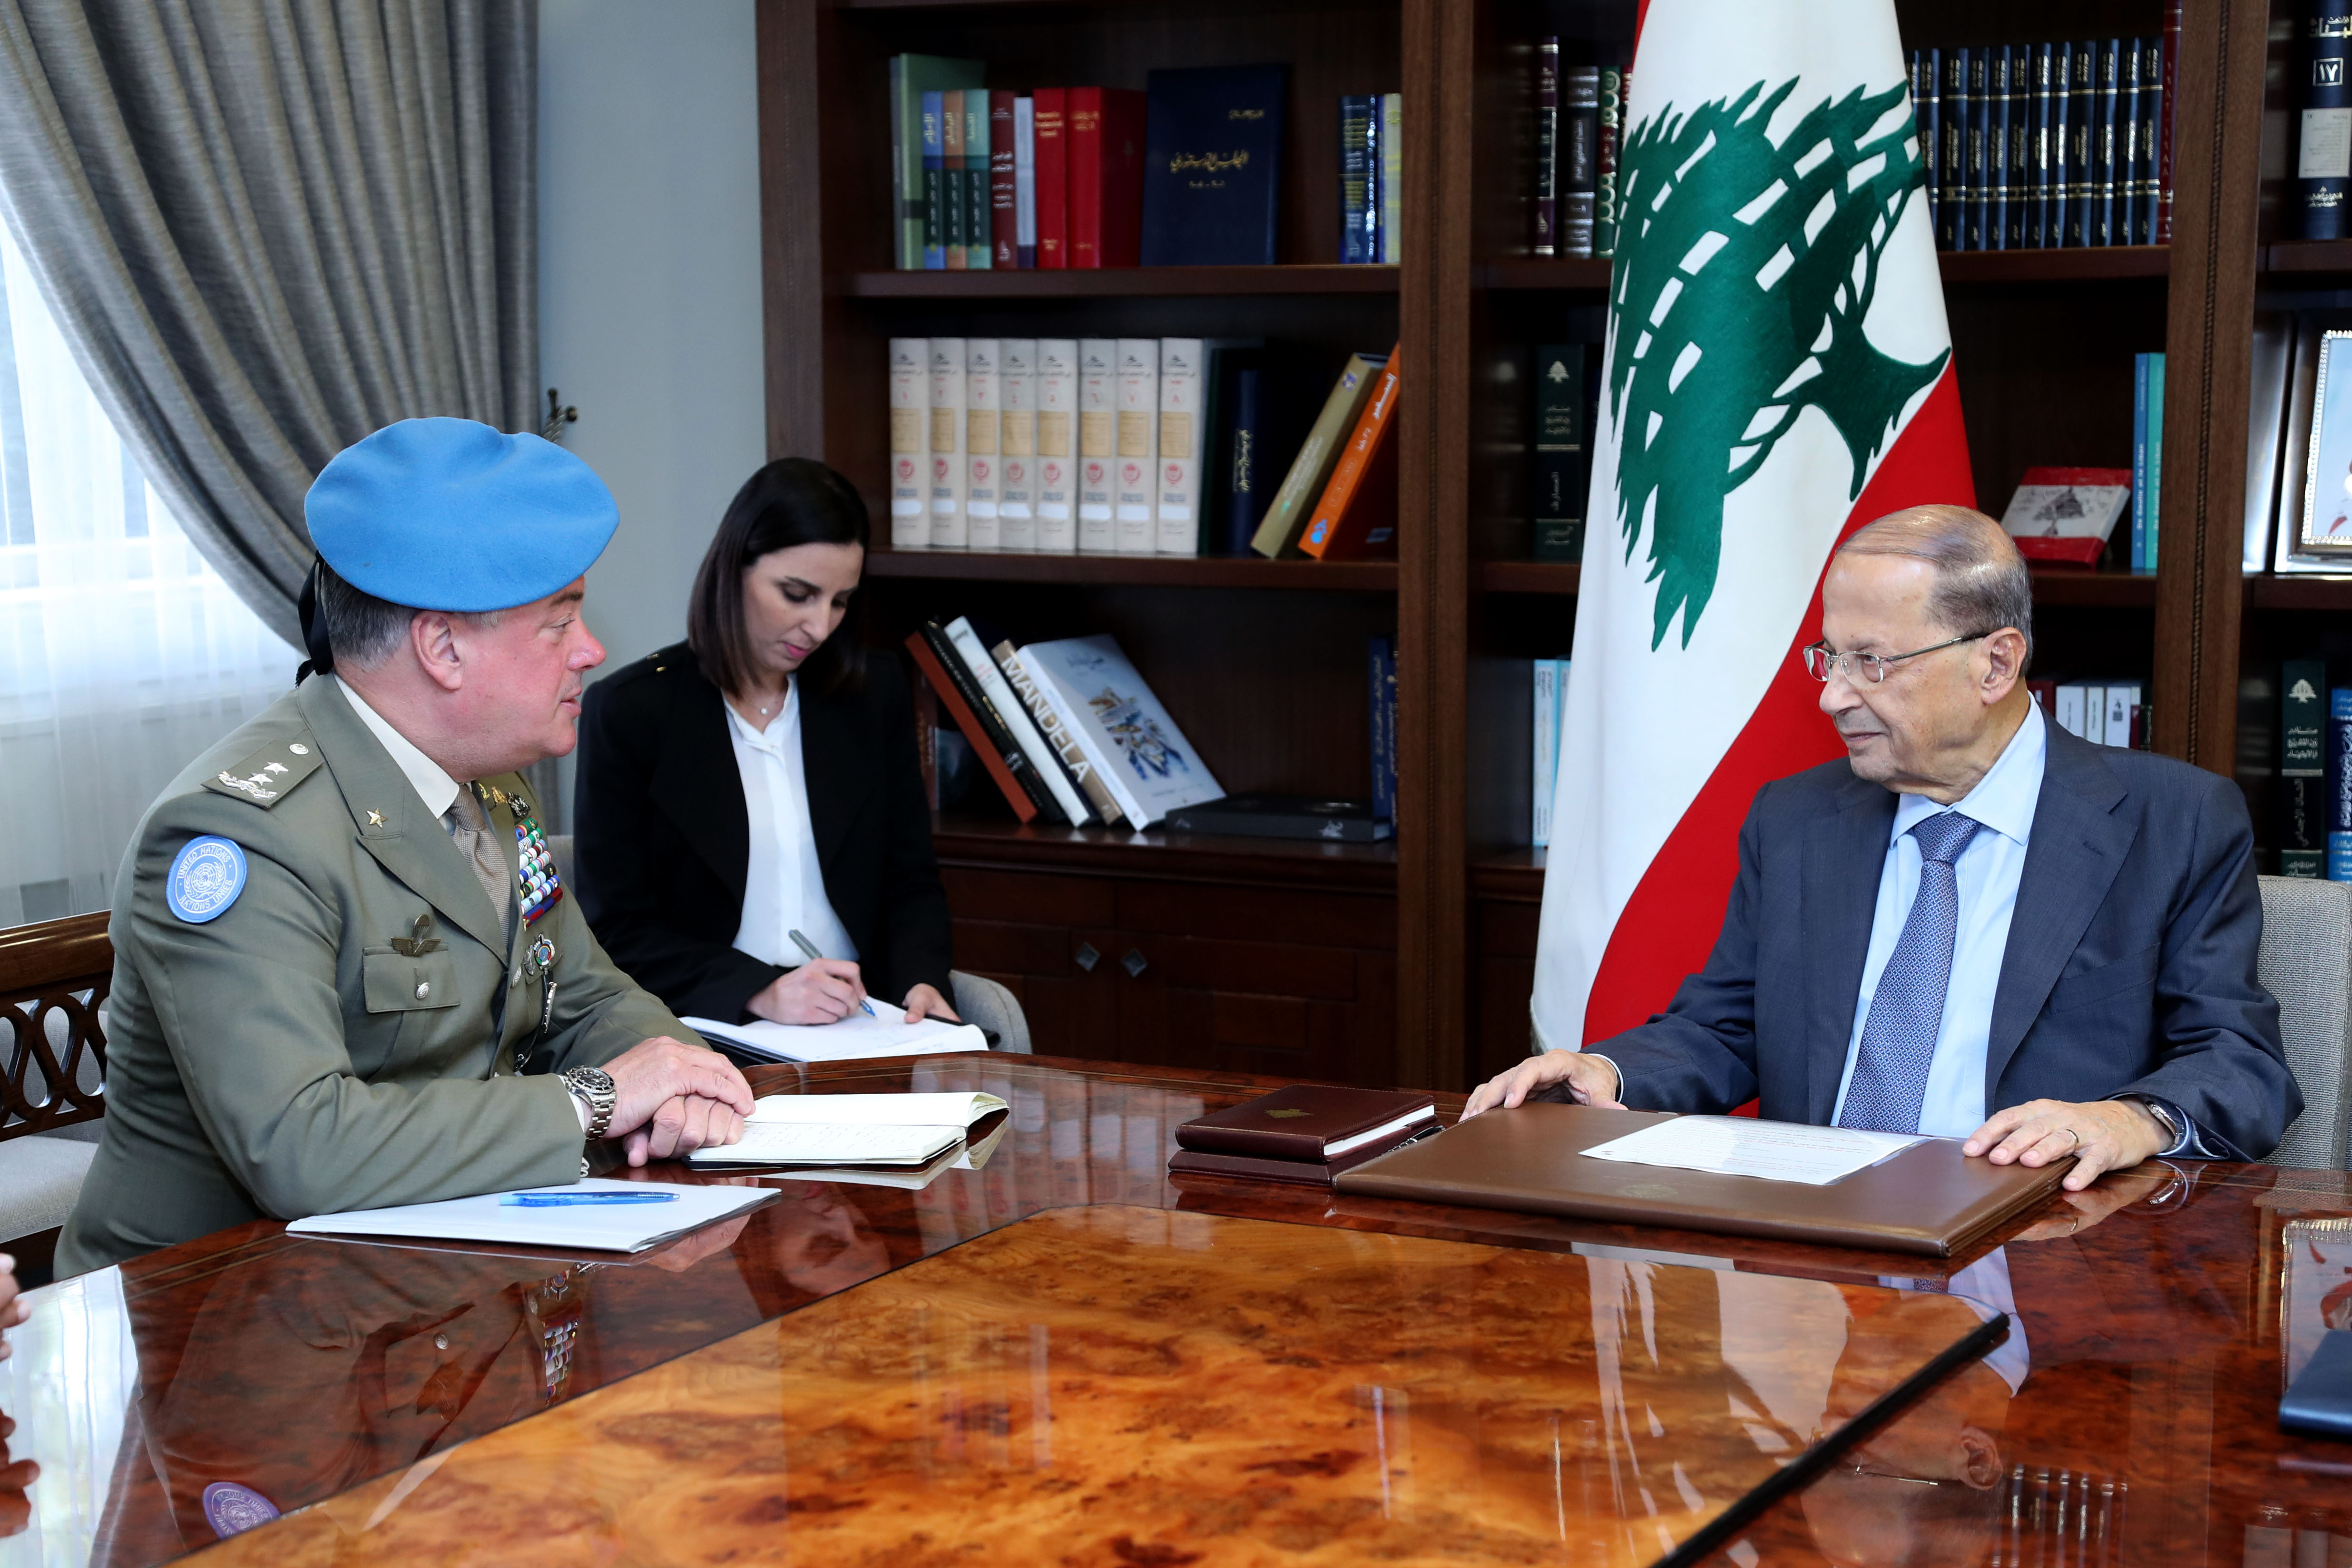 2 - Head of Force Commander of the United Nations Interim Force in Lebanon Major General Stefano Del Col